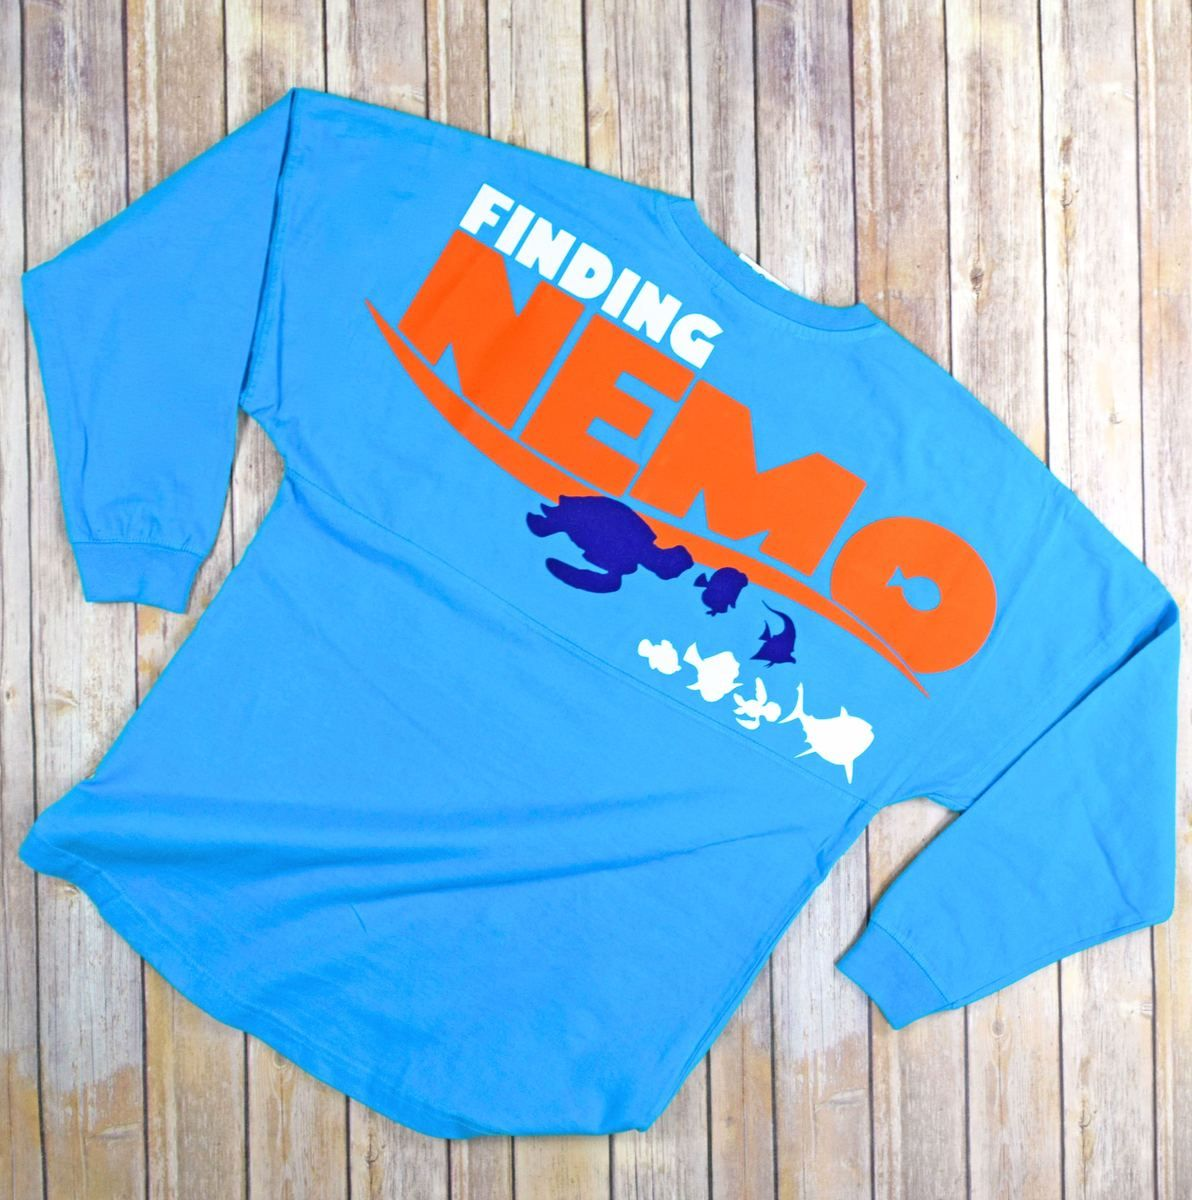 Finding Nemo Character Jersey In